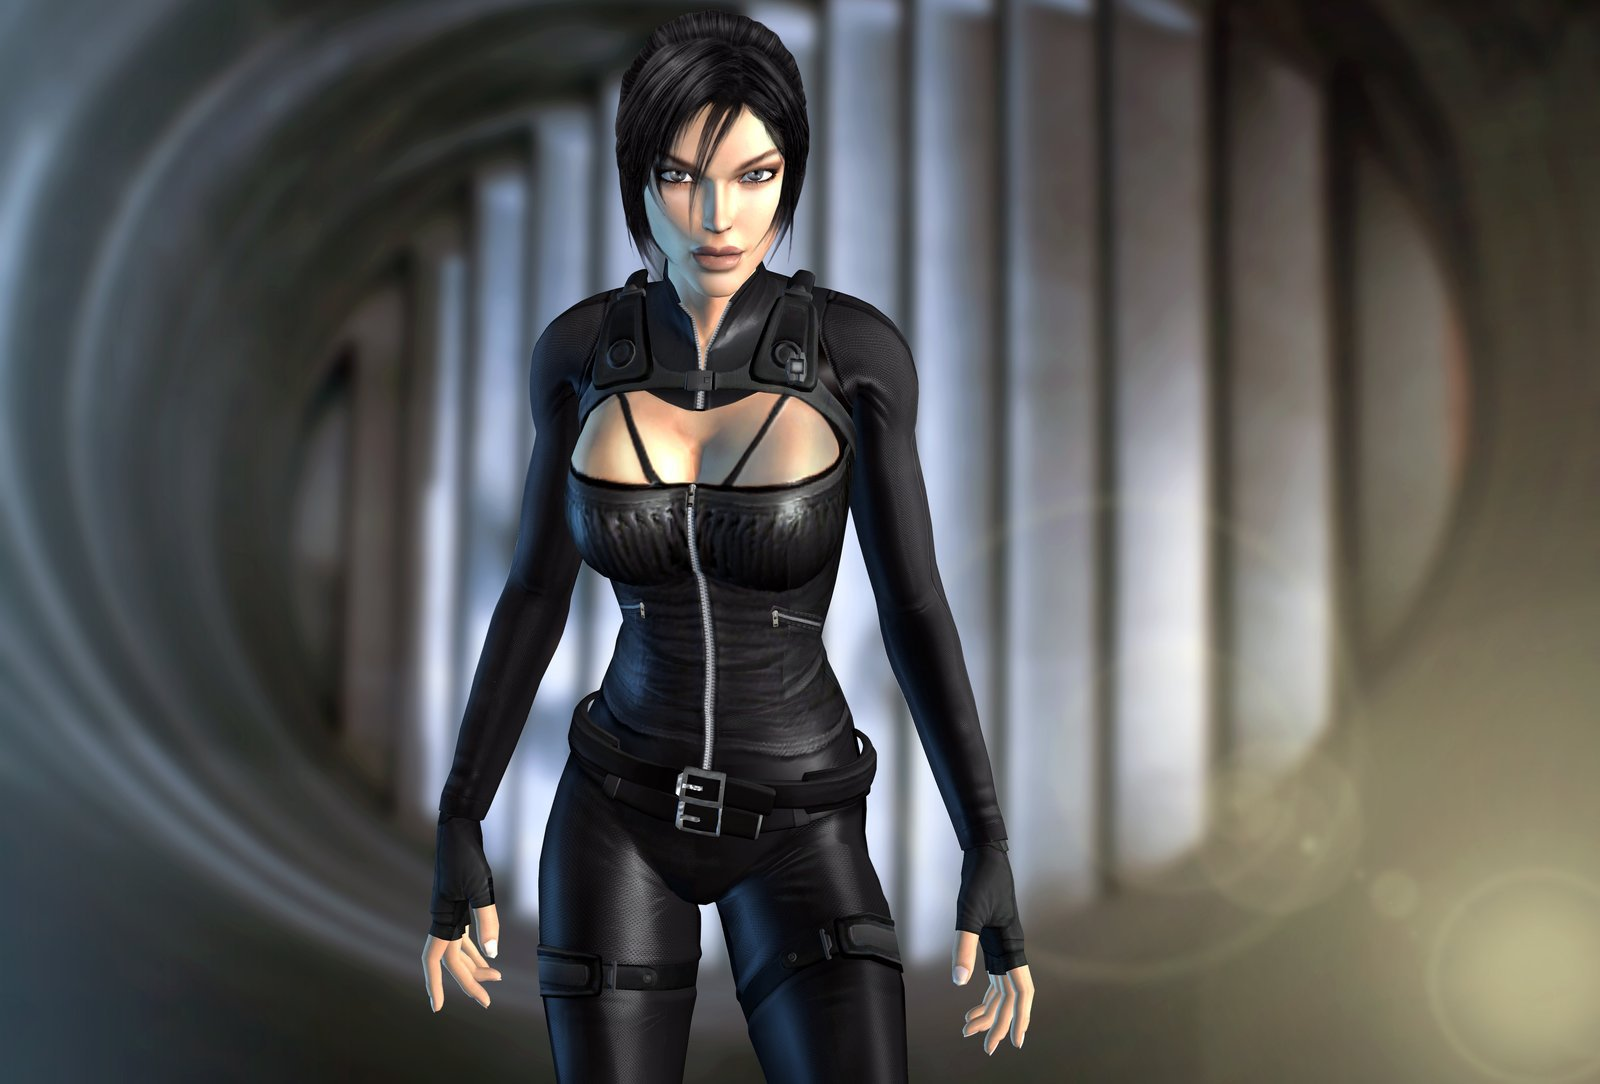 Aeon Flux Backgrounds, Compatible - PC, Mobile, Gadgets| 1600x1084 px